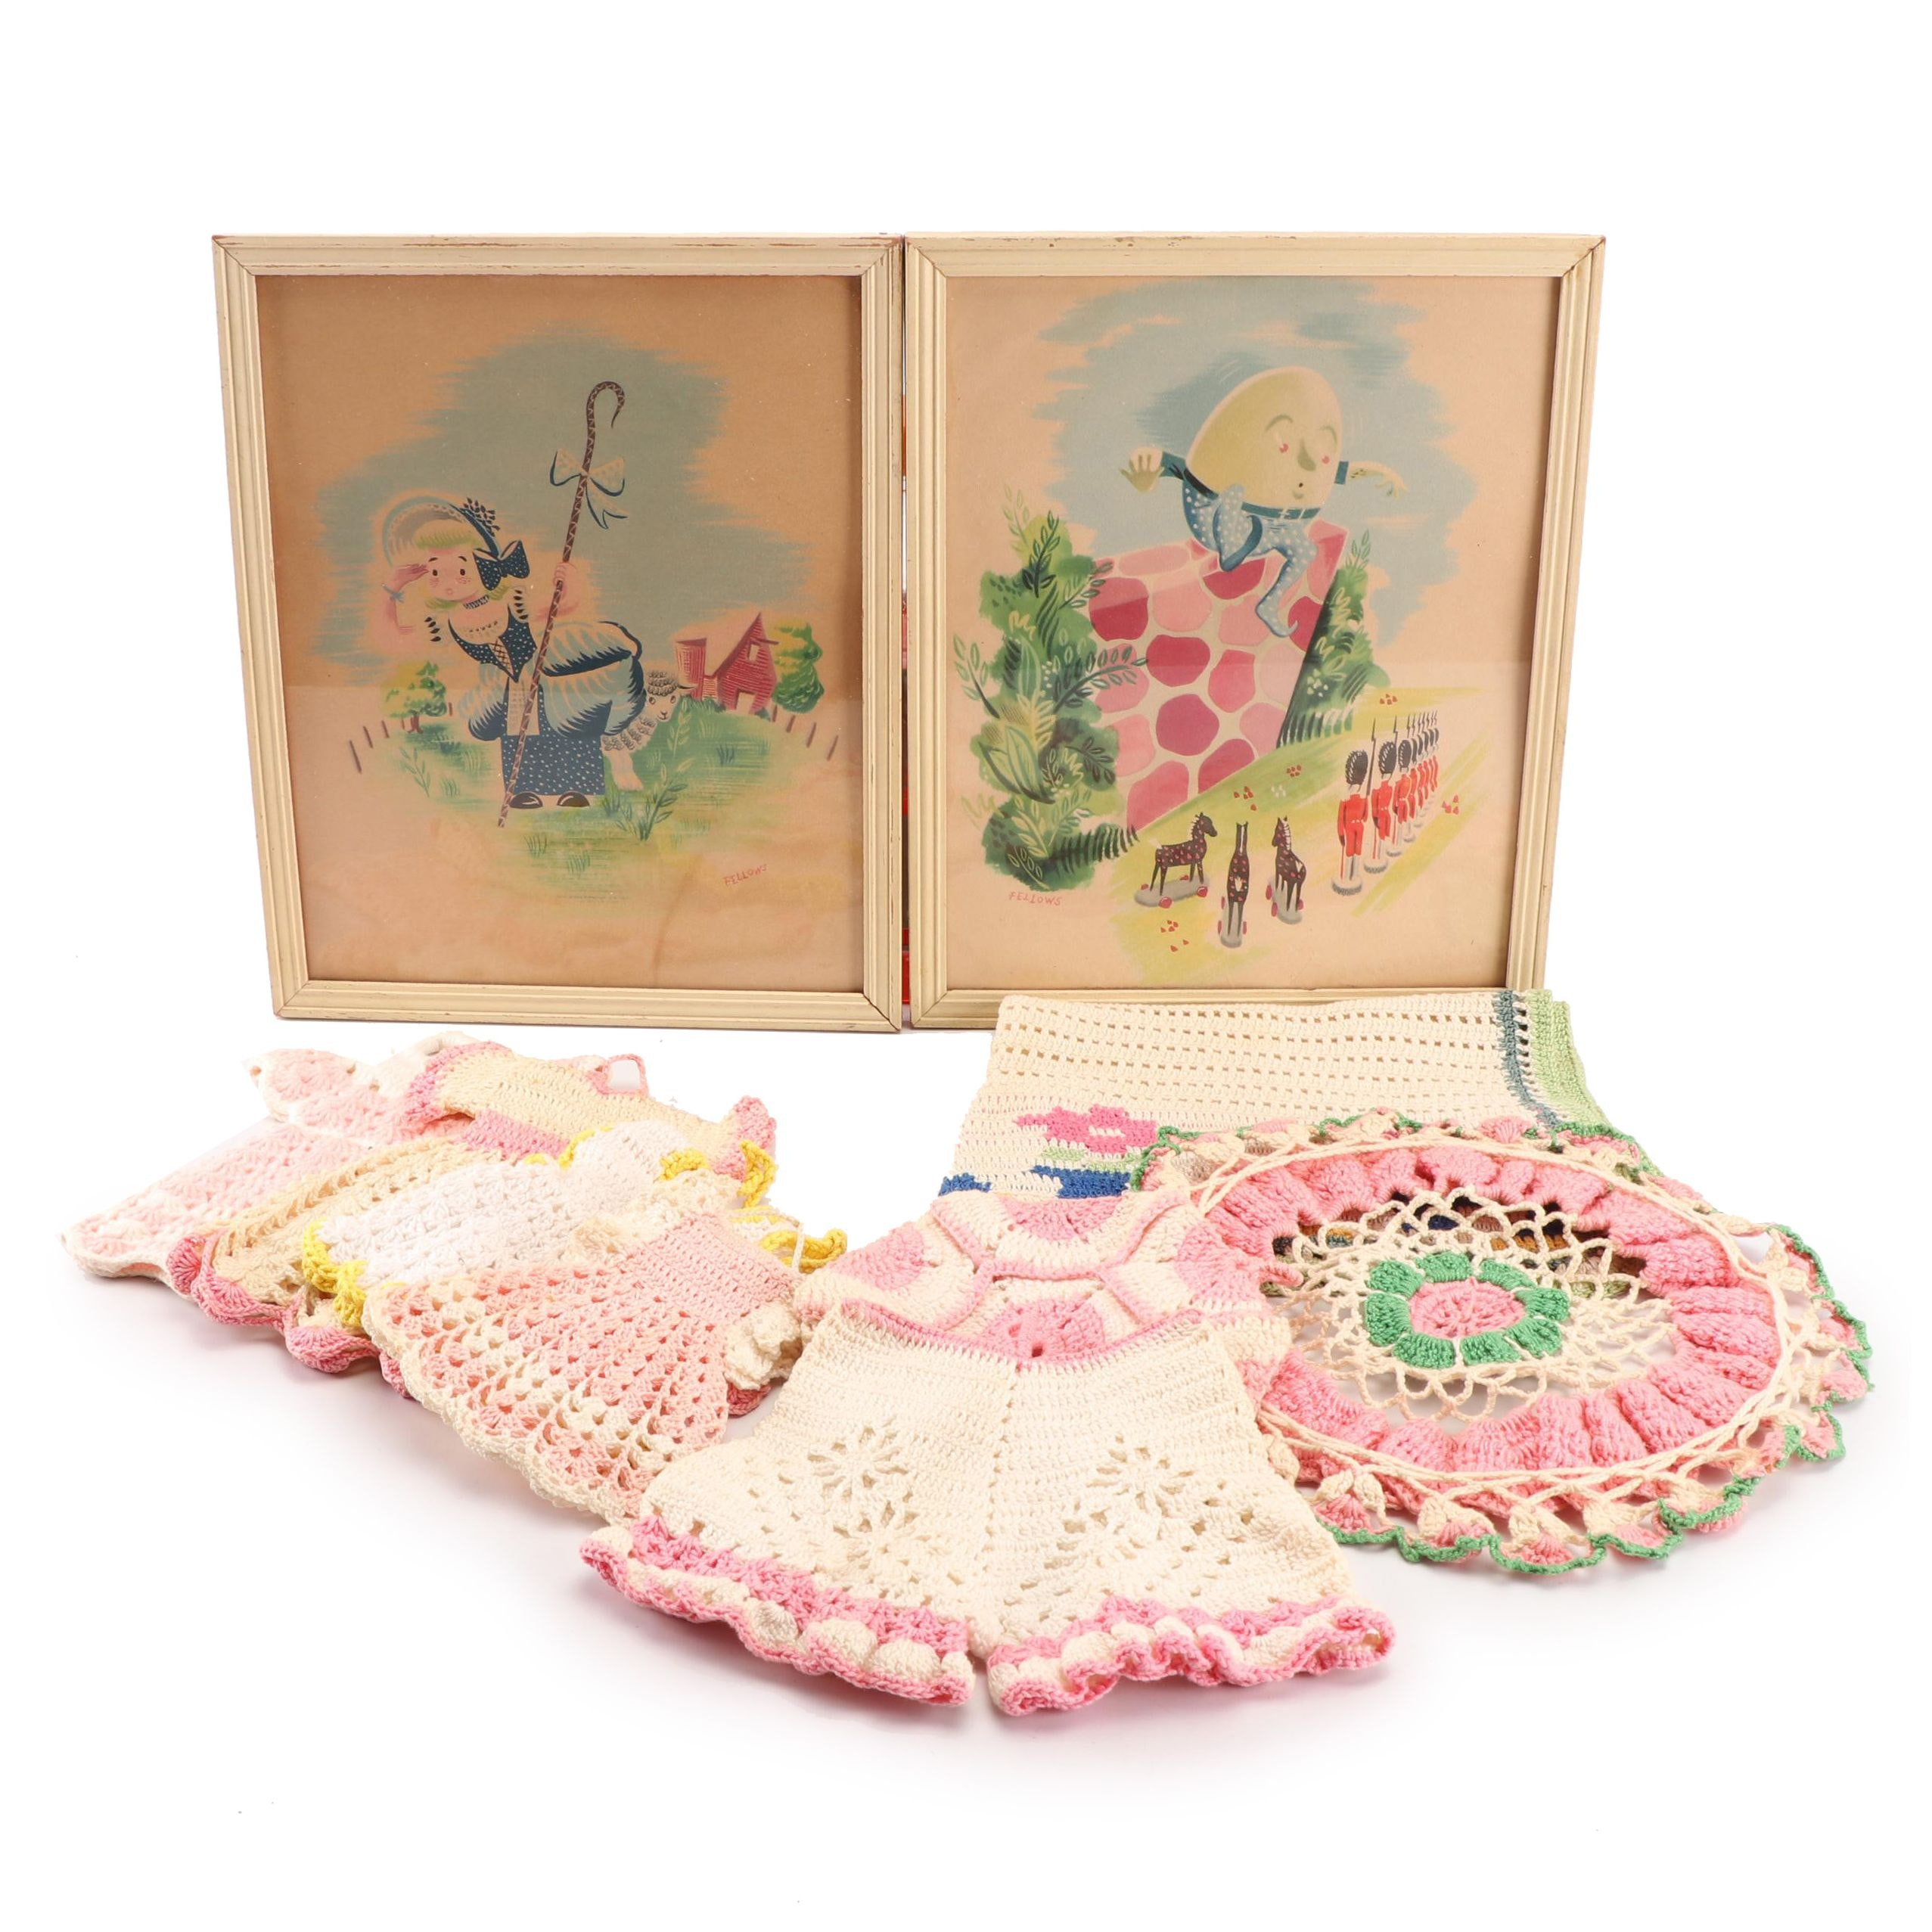 Vintage Crocheted Doilies and Dress Drink Coasters with Fairy Tale Prints